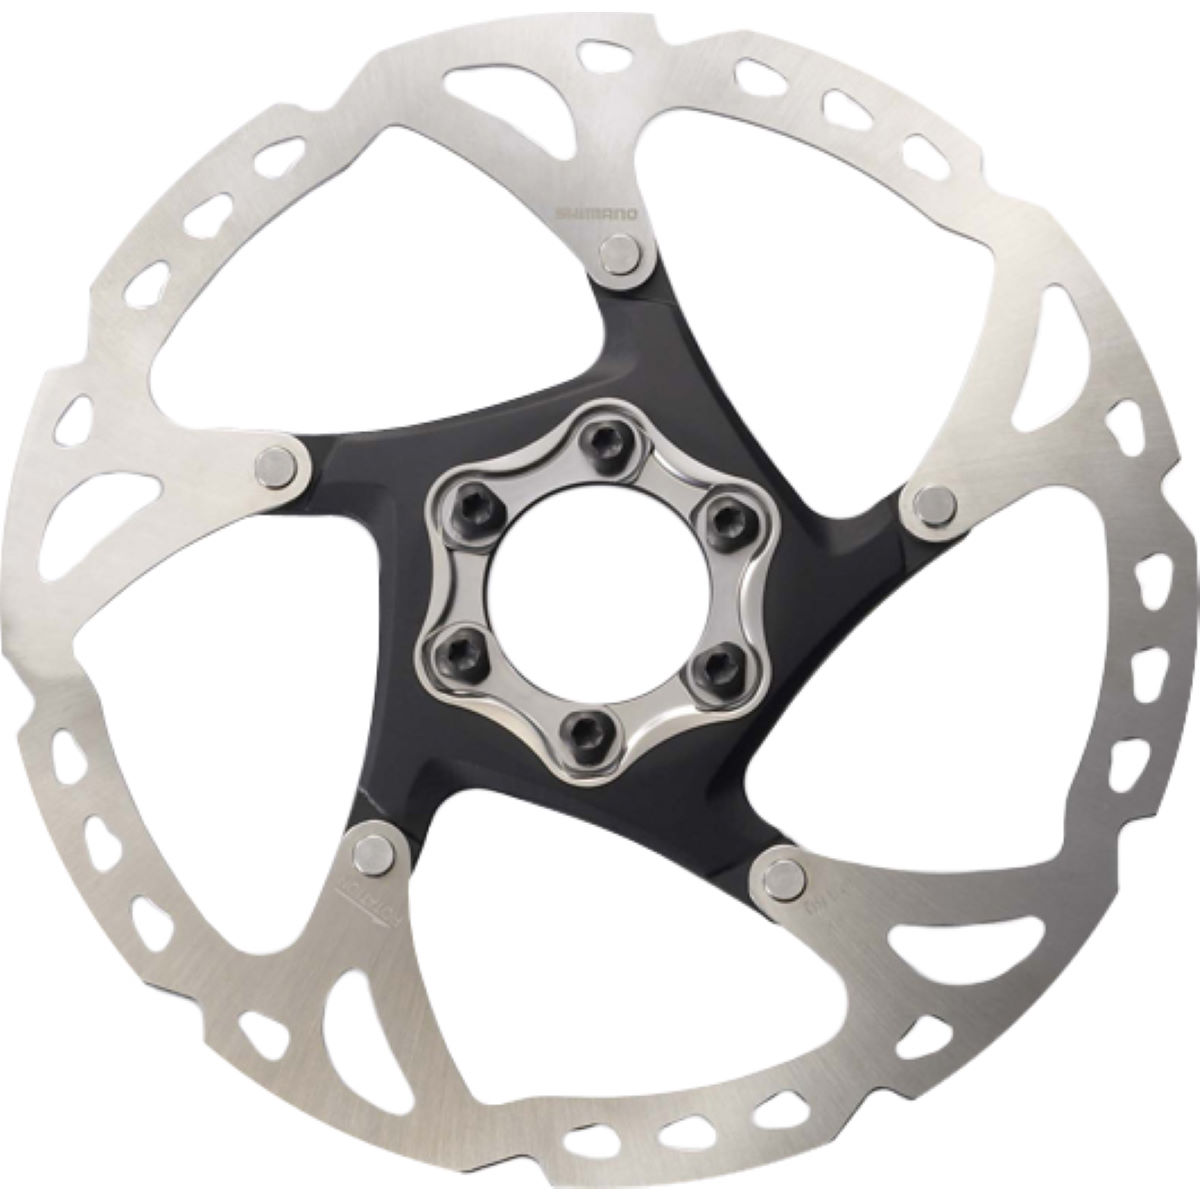 Shimano XT RT76 180mm 6-Bolt Disc Rotor